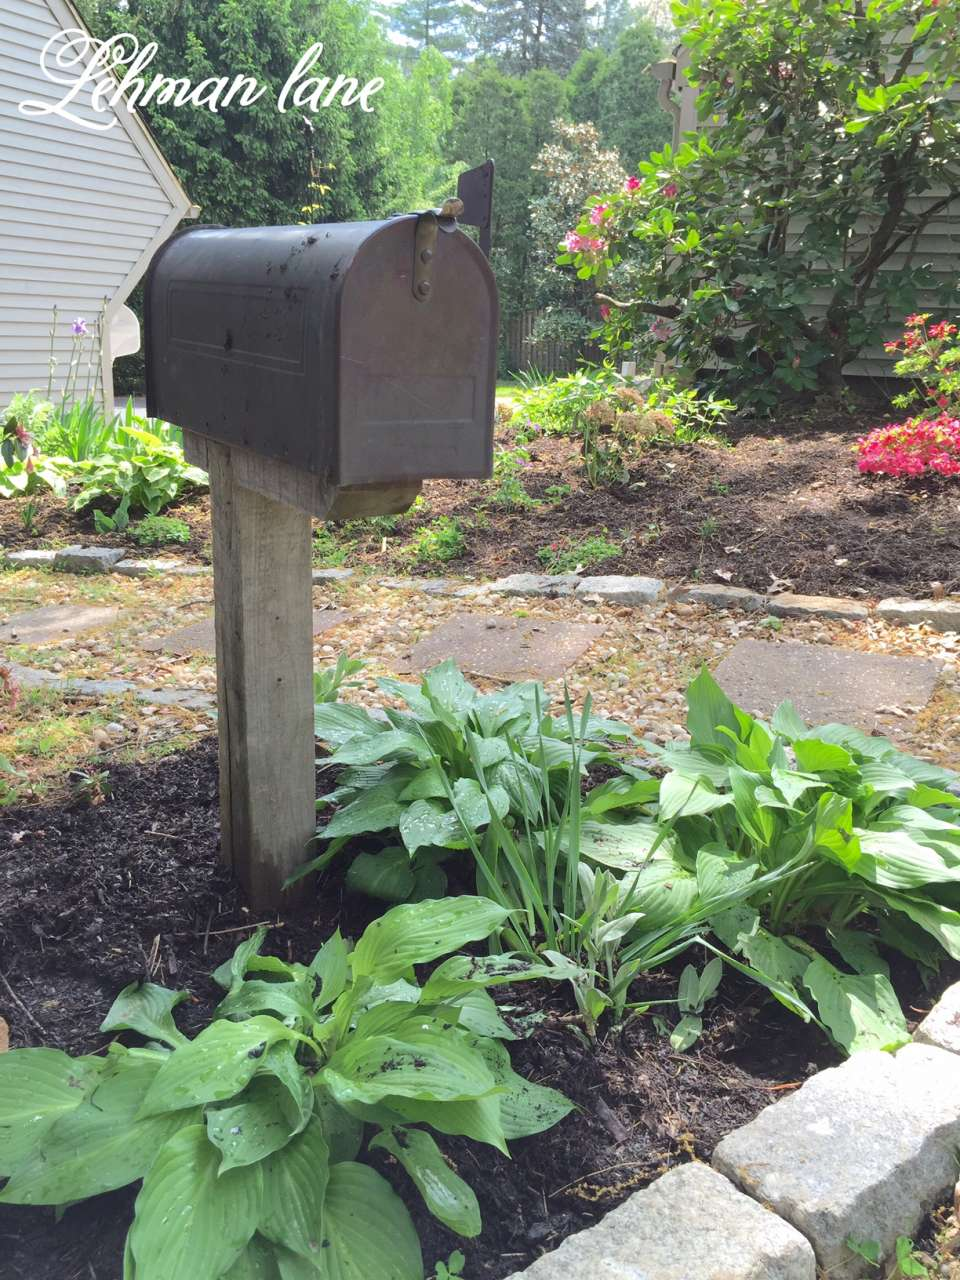 My Shady Mailbox Garden - For Storing My Garden Tools